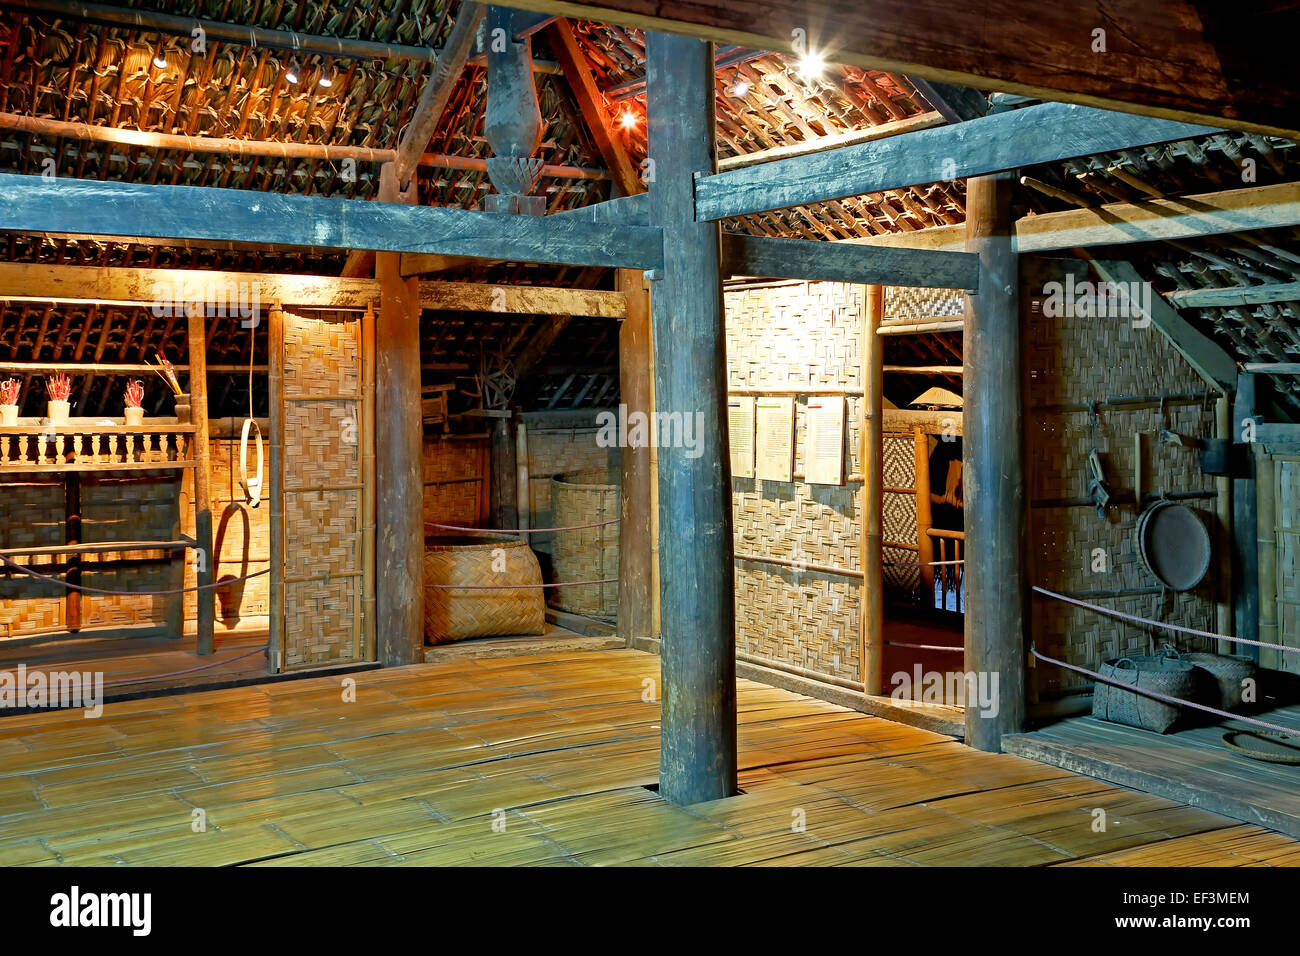 Interior of Tay house, Vietnam Museum of Ethnology, Hanoi, Vietnam - Stock Image